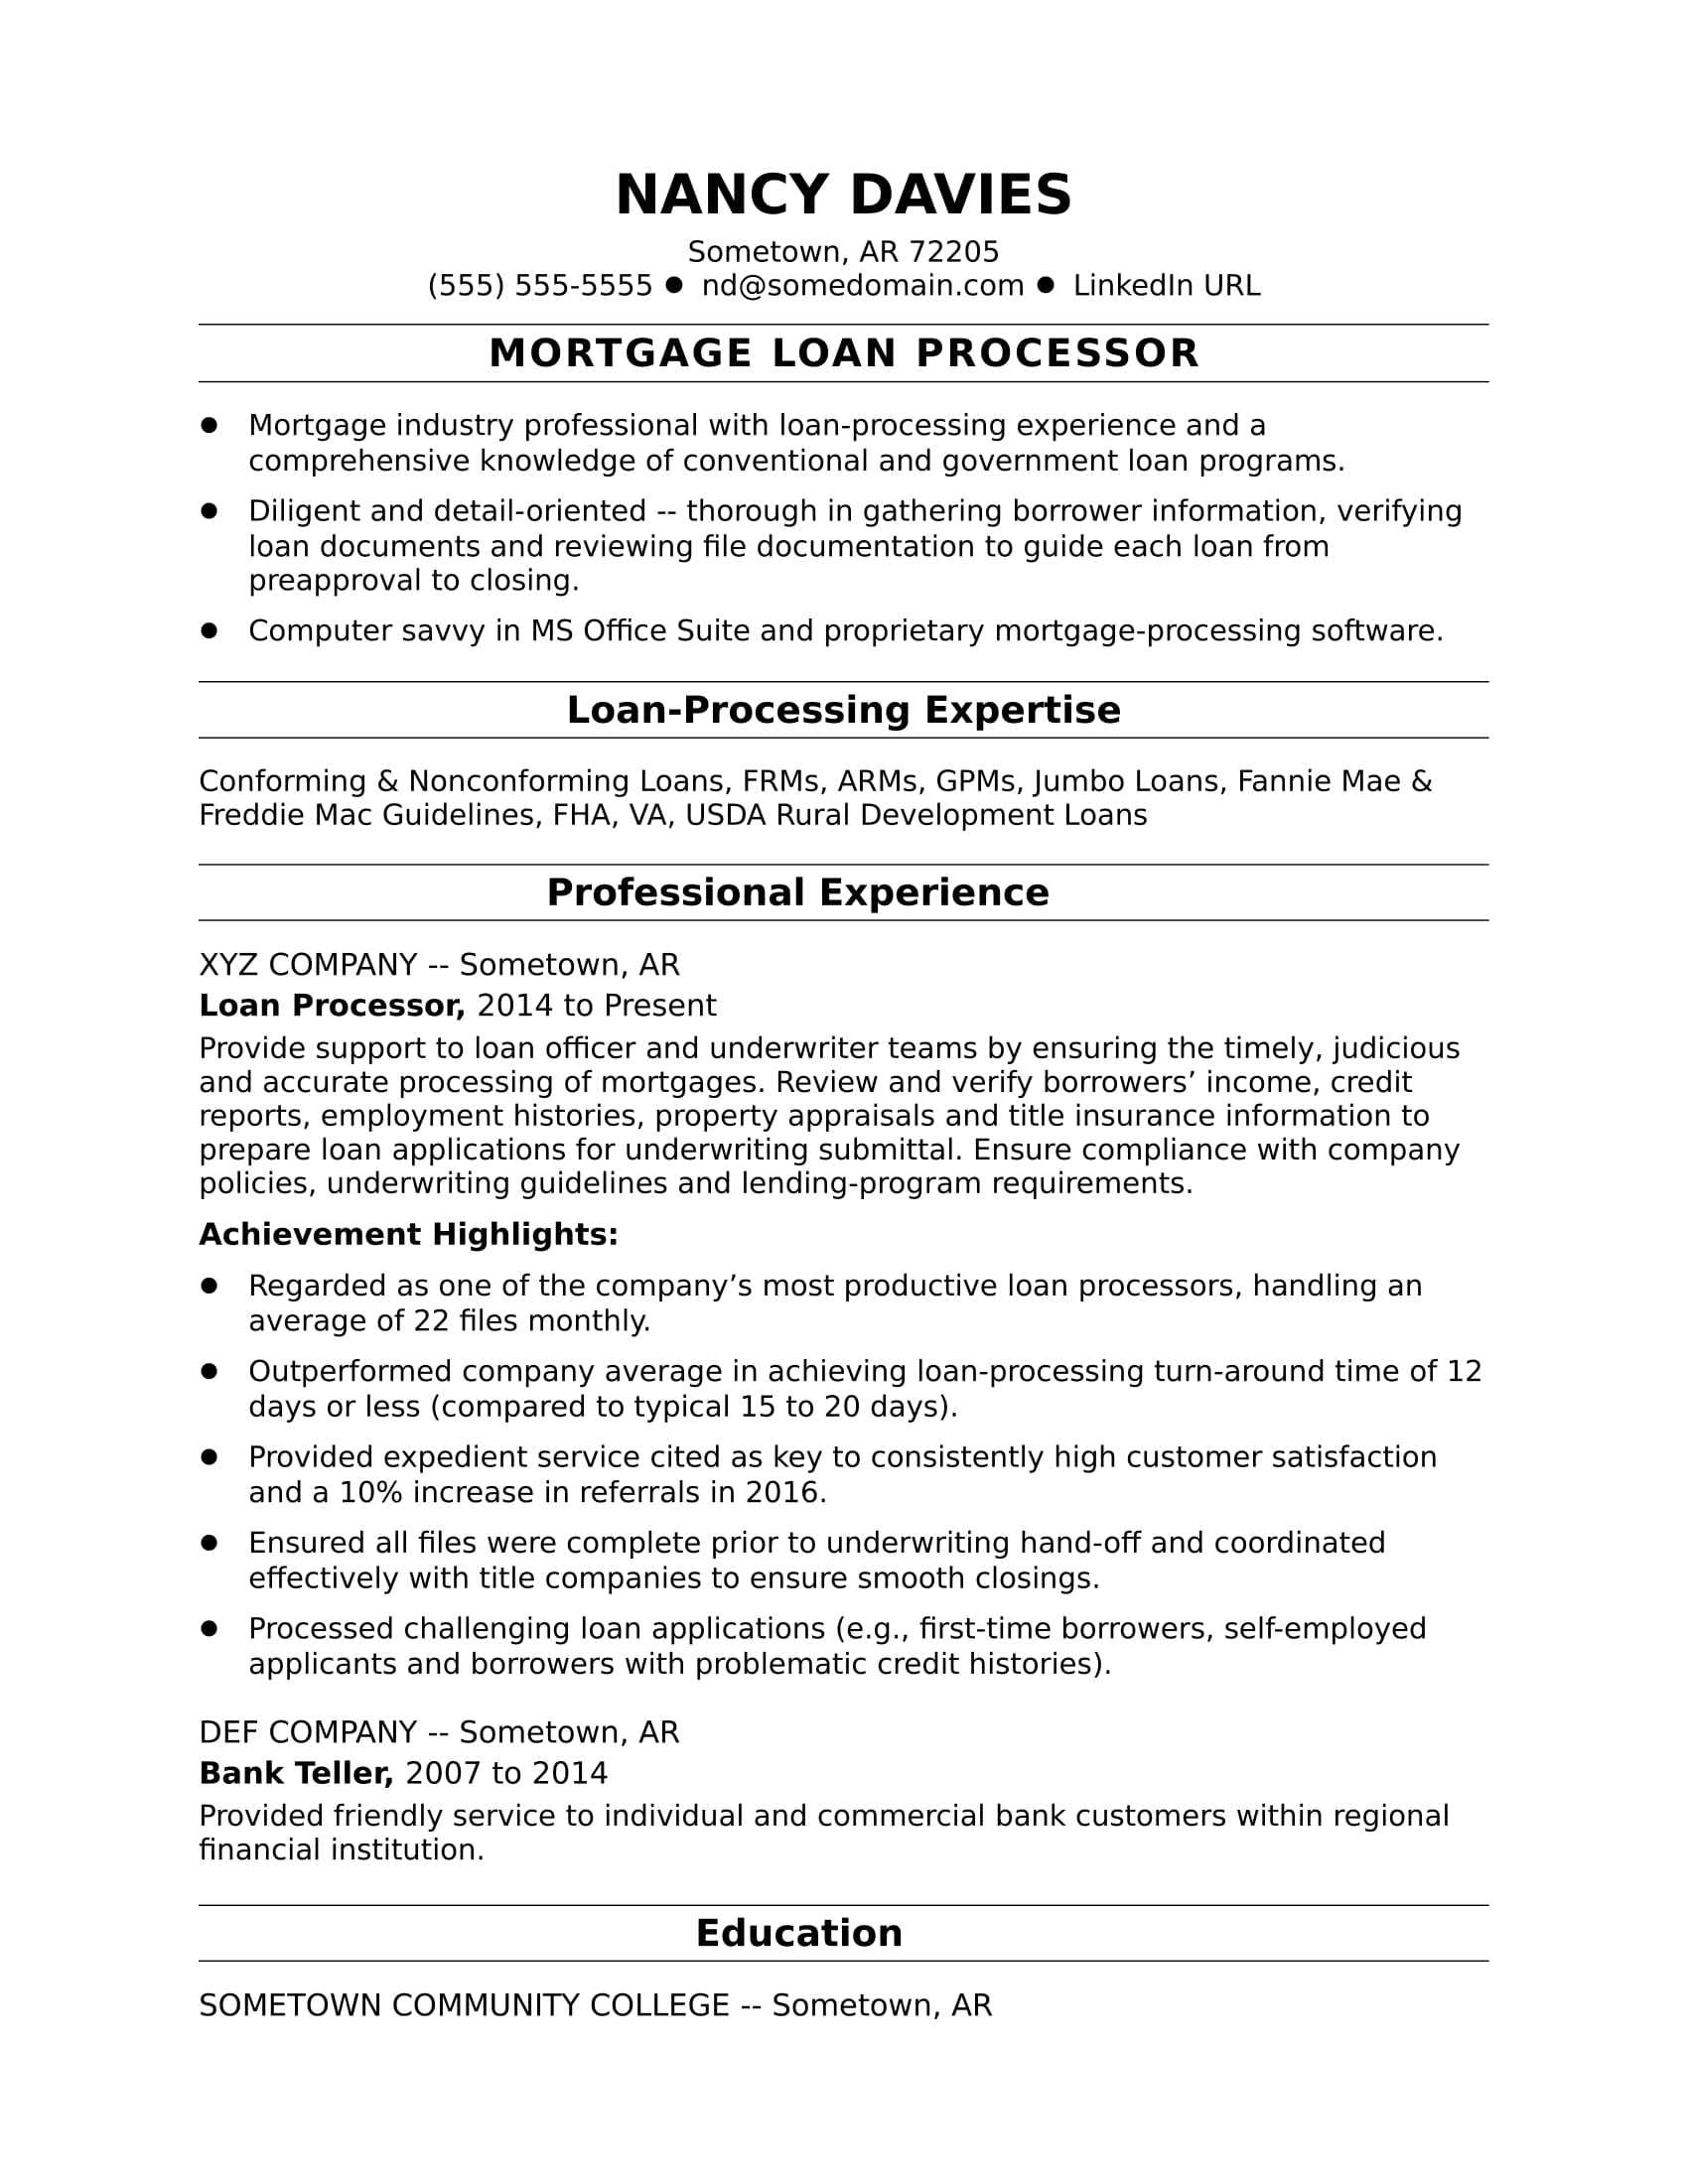 mortgage loan processor resume sample monster experience professional examples validator Resume Experience Professional Resume Examples